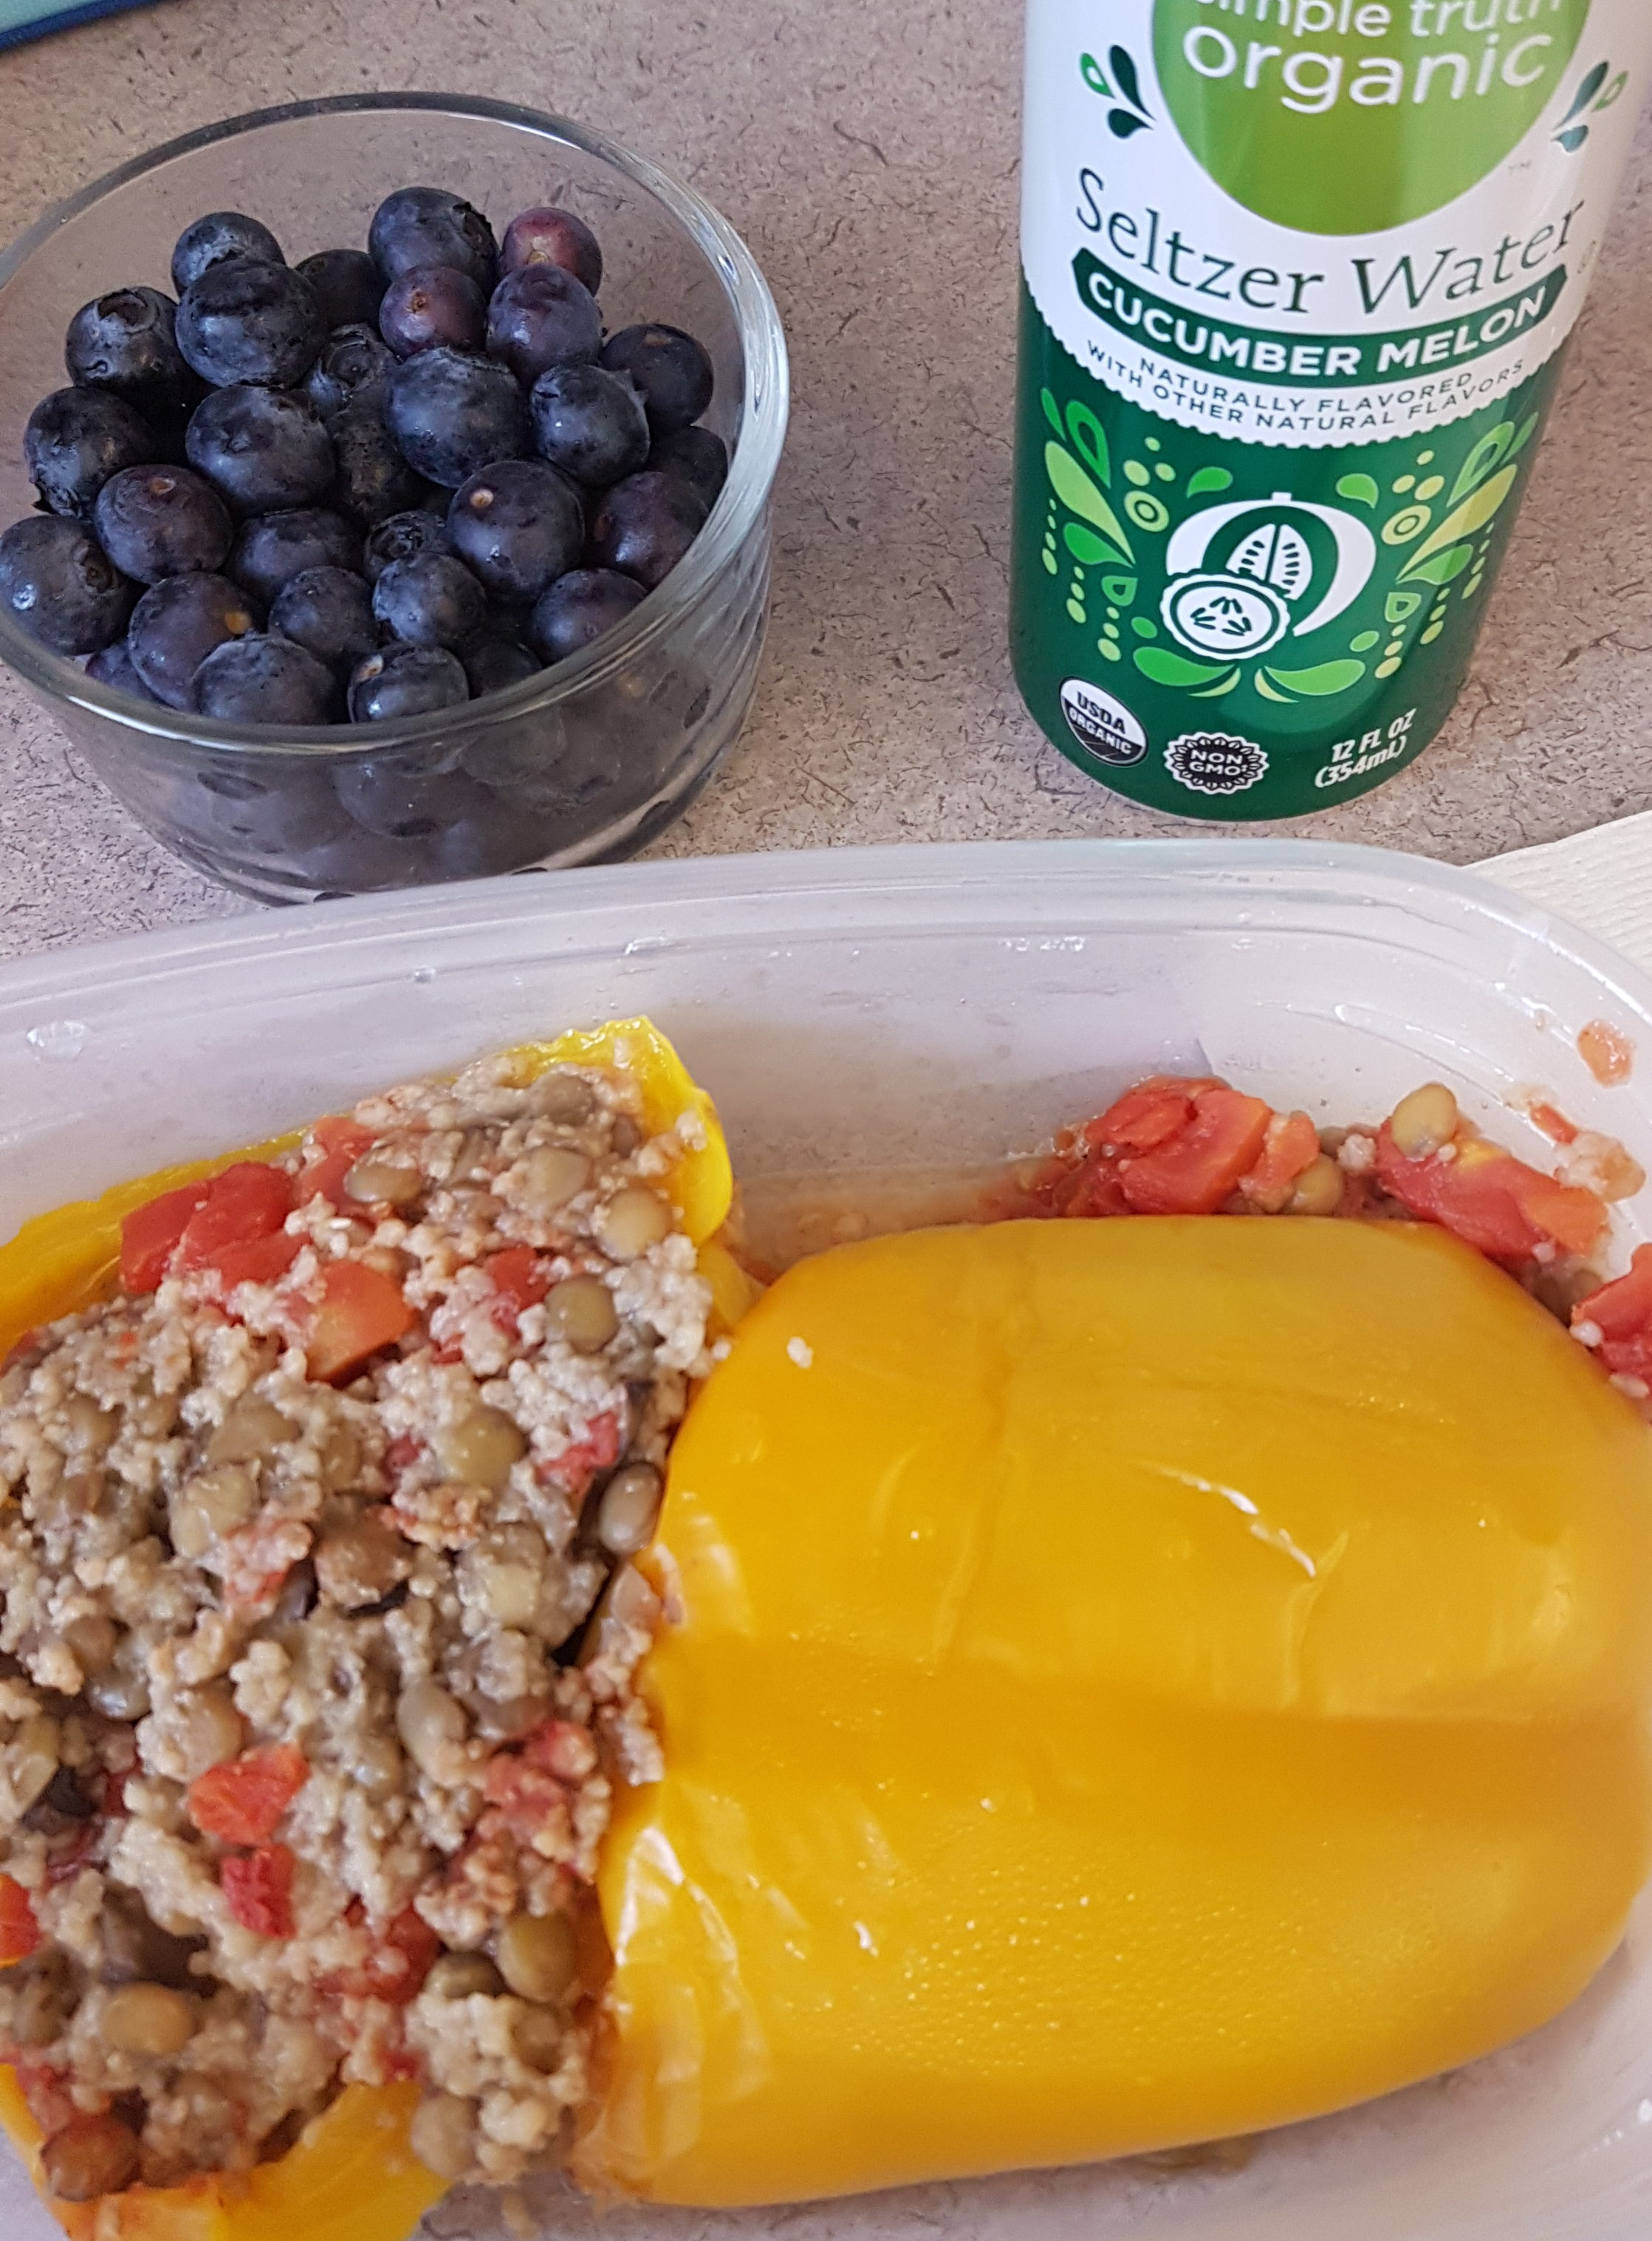 lentil and couscous stuffed pepper with blueberries